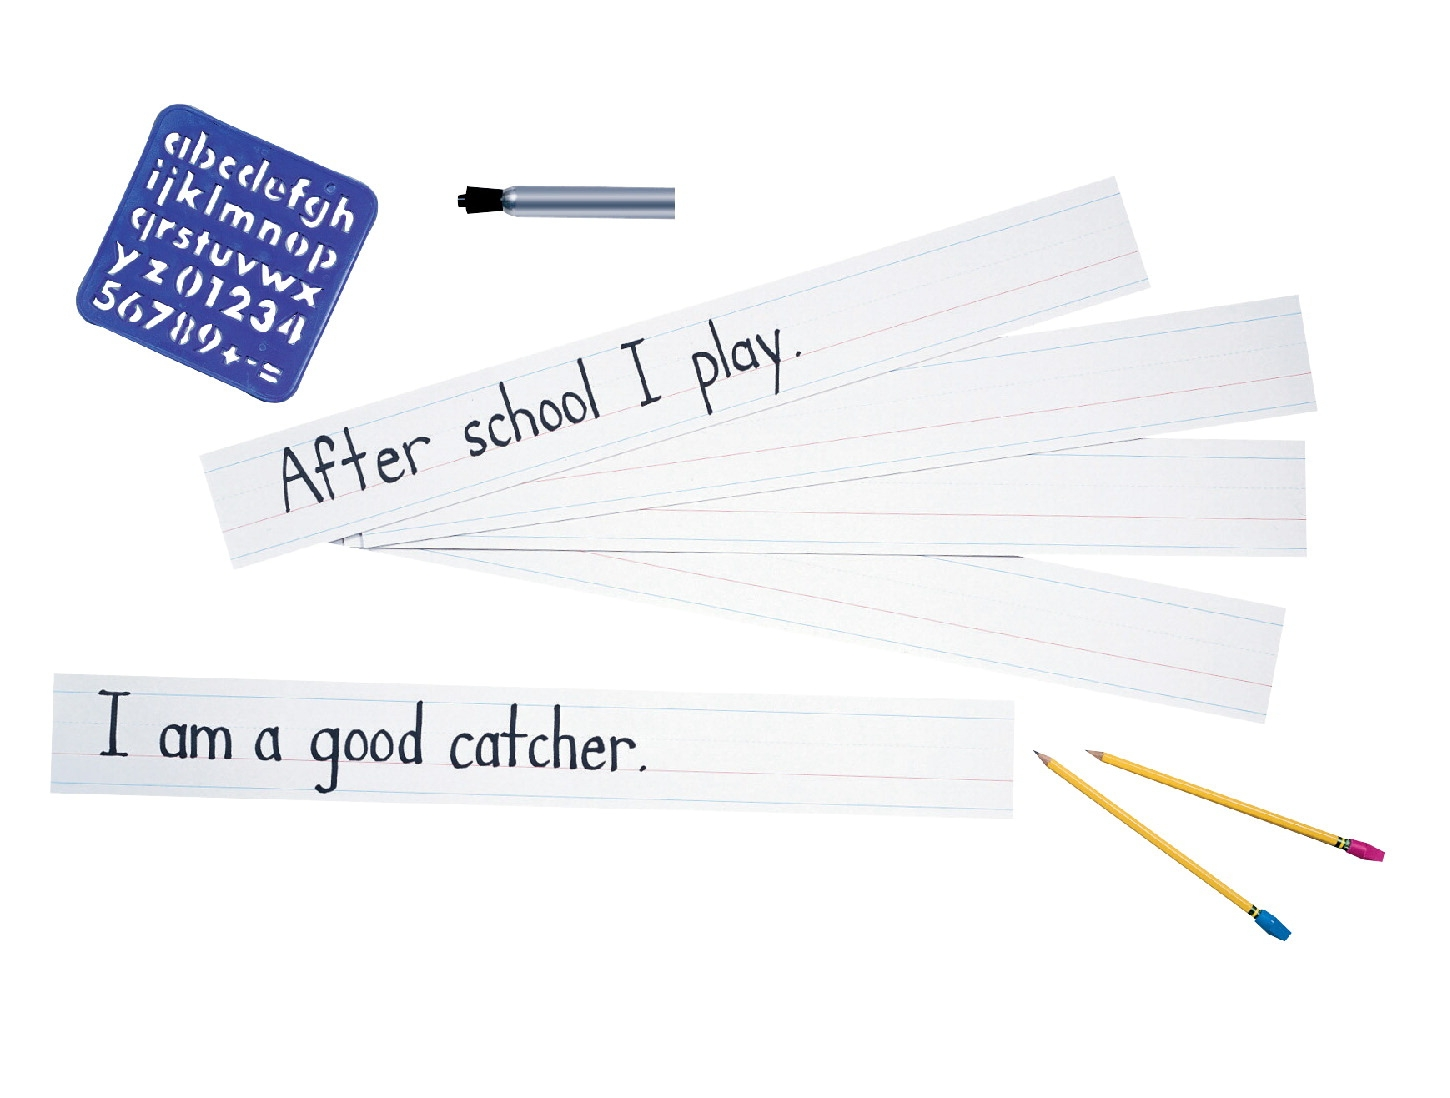 Special Needs Special Needs School Smart Money Kit & Math Product - 085288 - School Specialty Sentence Strips Zaner-bloser Style; 3 X 24 Inches; White; 100 Sheets 085288